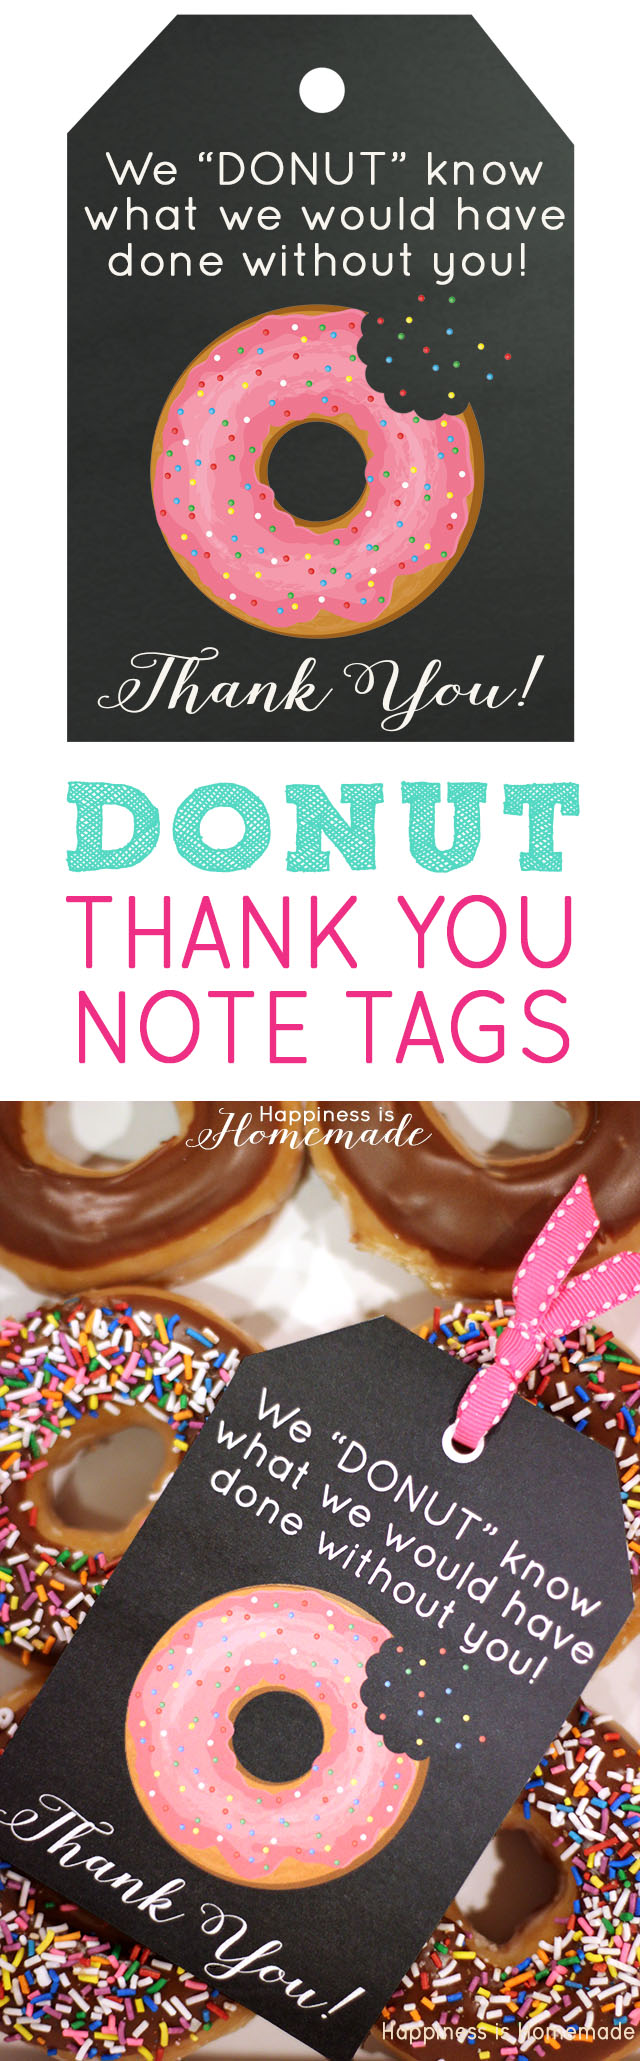 Donut-Thank-You-Note-Tags-We-Donut-Know-What-We-Would-Have-Done-Without-You